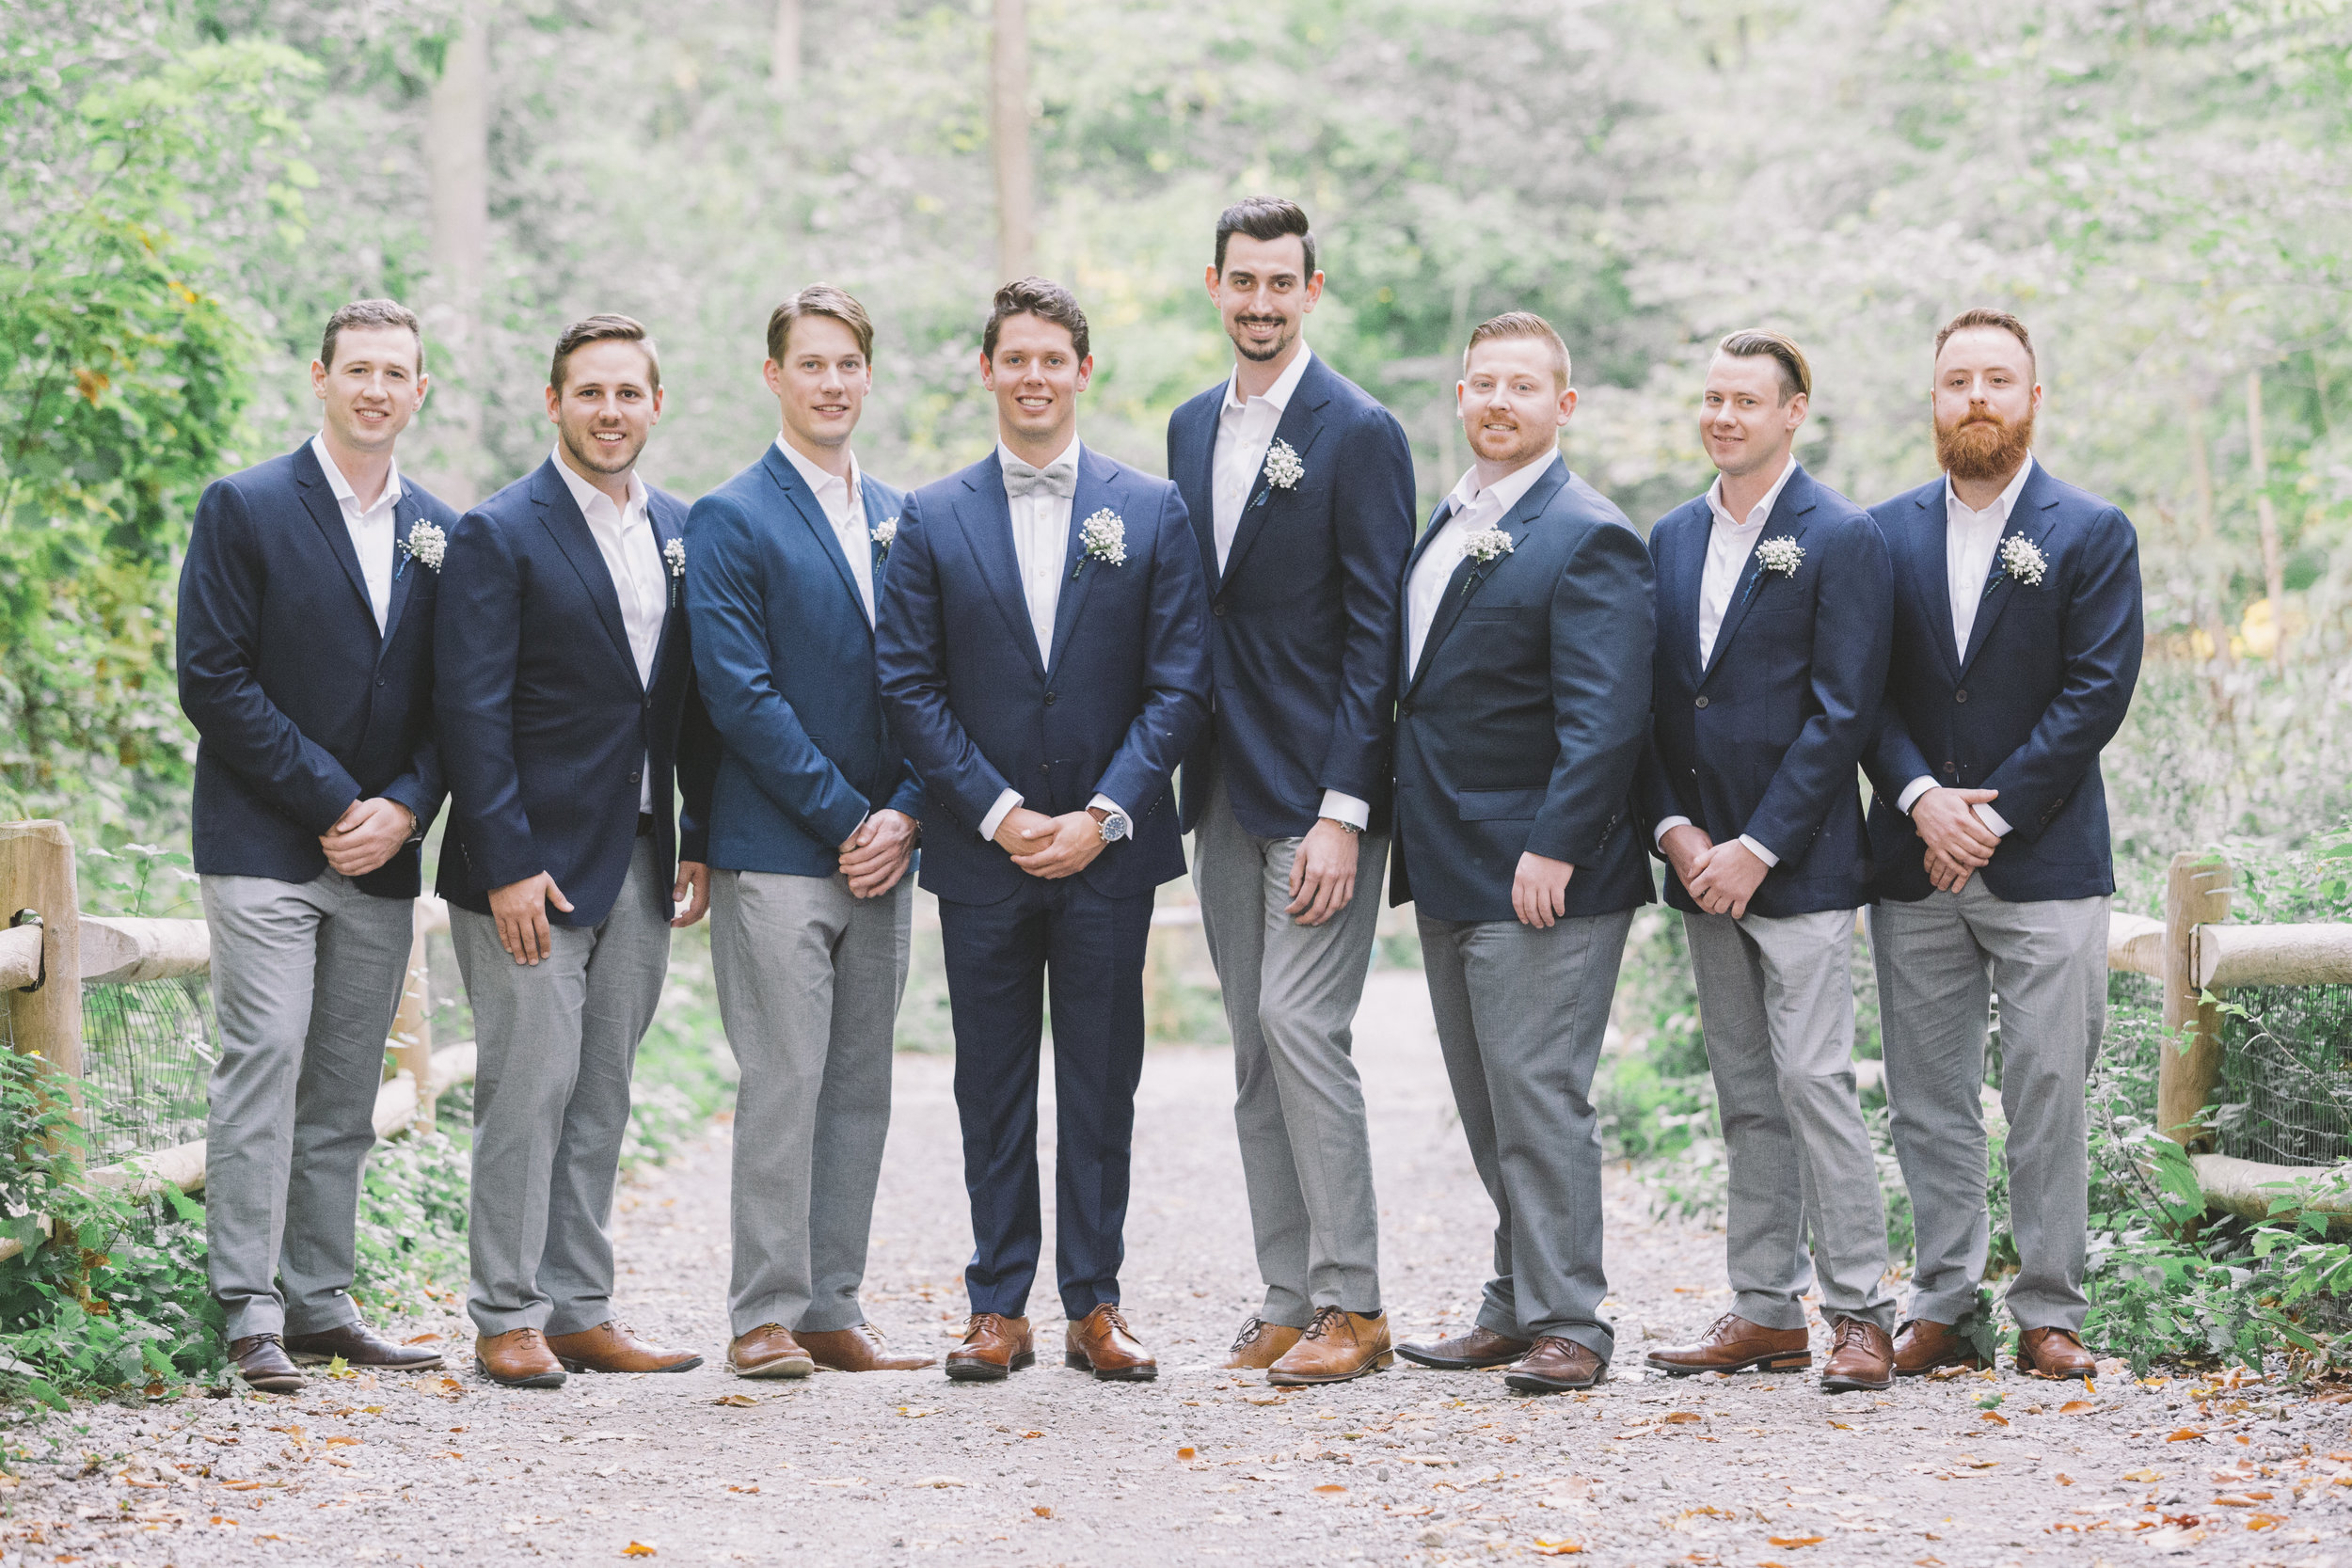 Groom's men posed for a photo in the Don Valley.